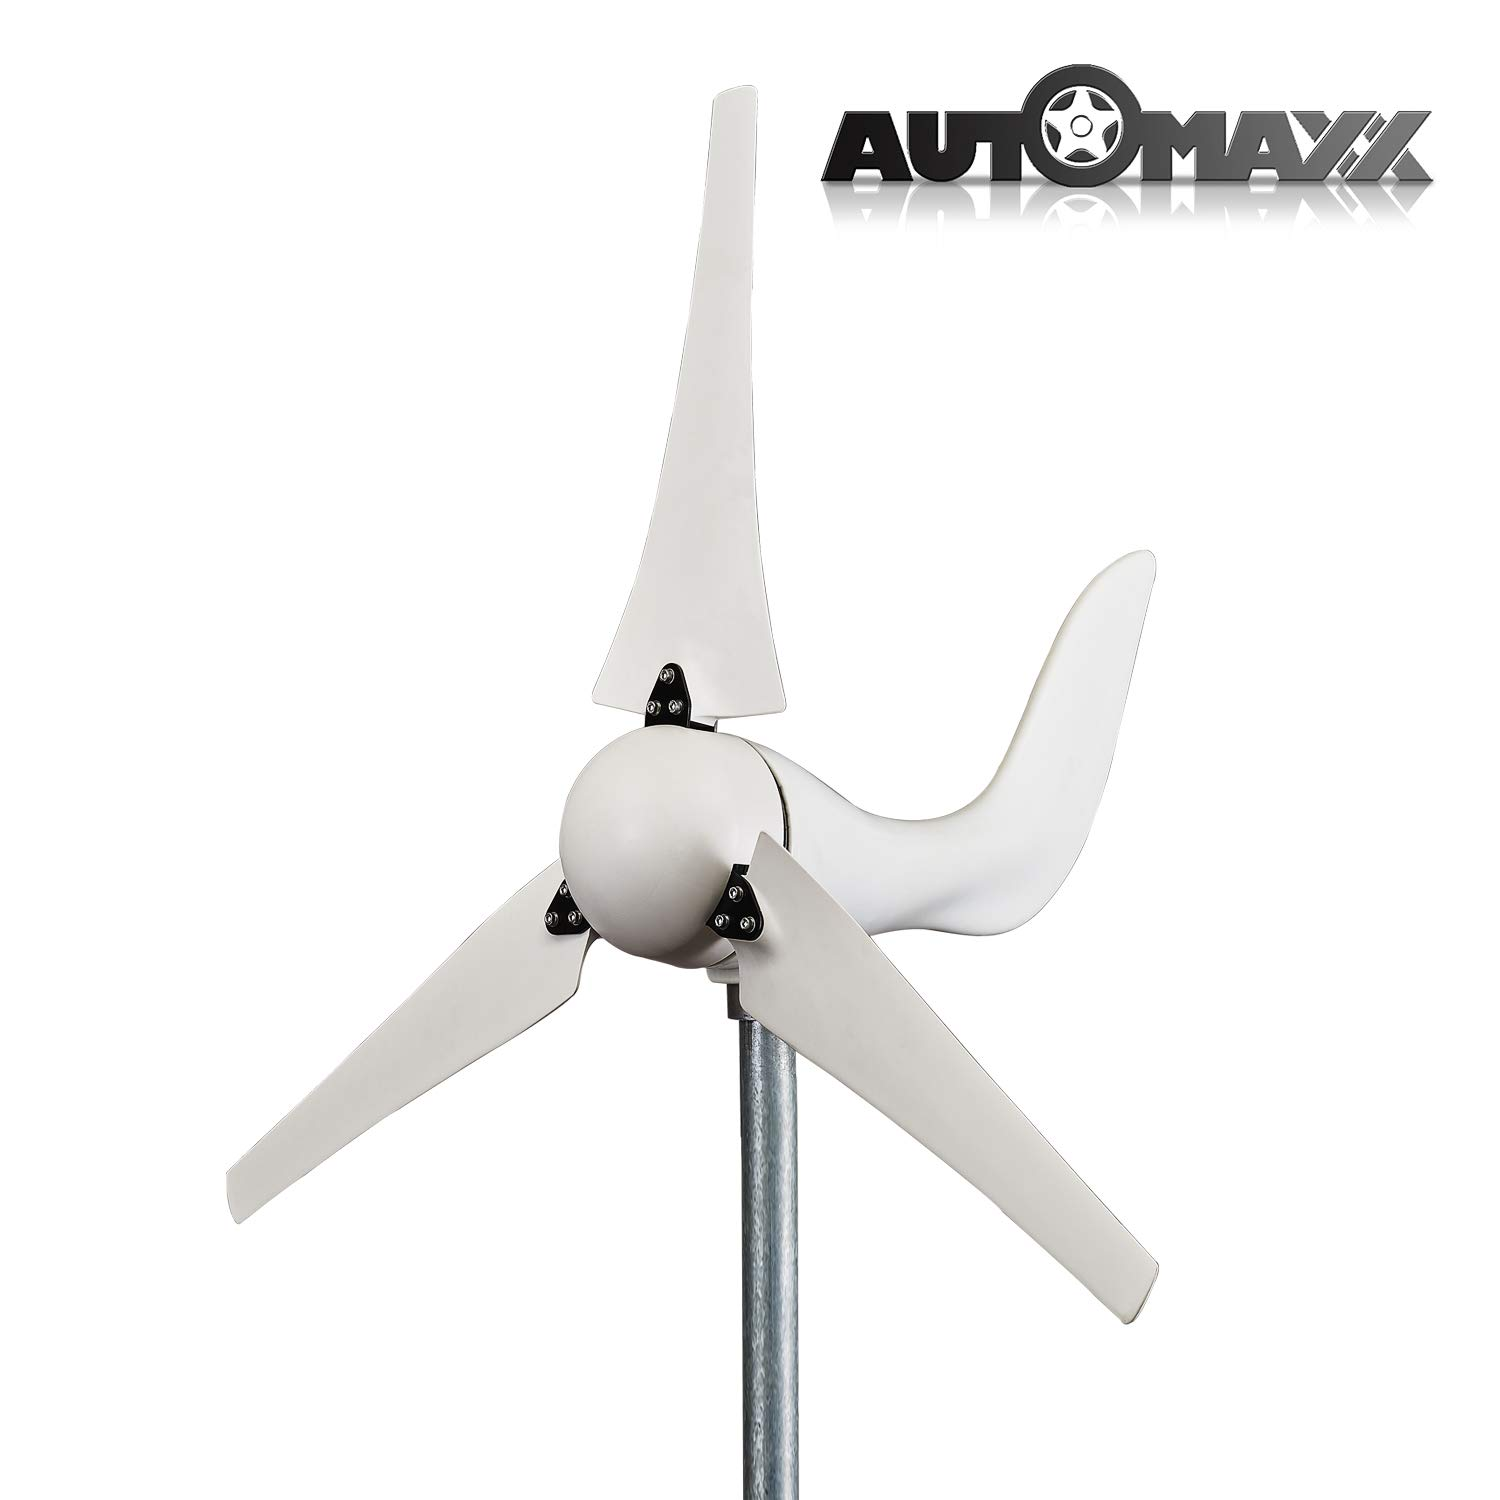 Windmill (DB-400) 400W 12V Wind Turbine Generator kit